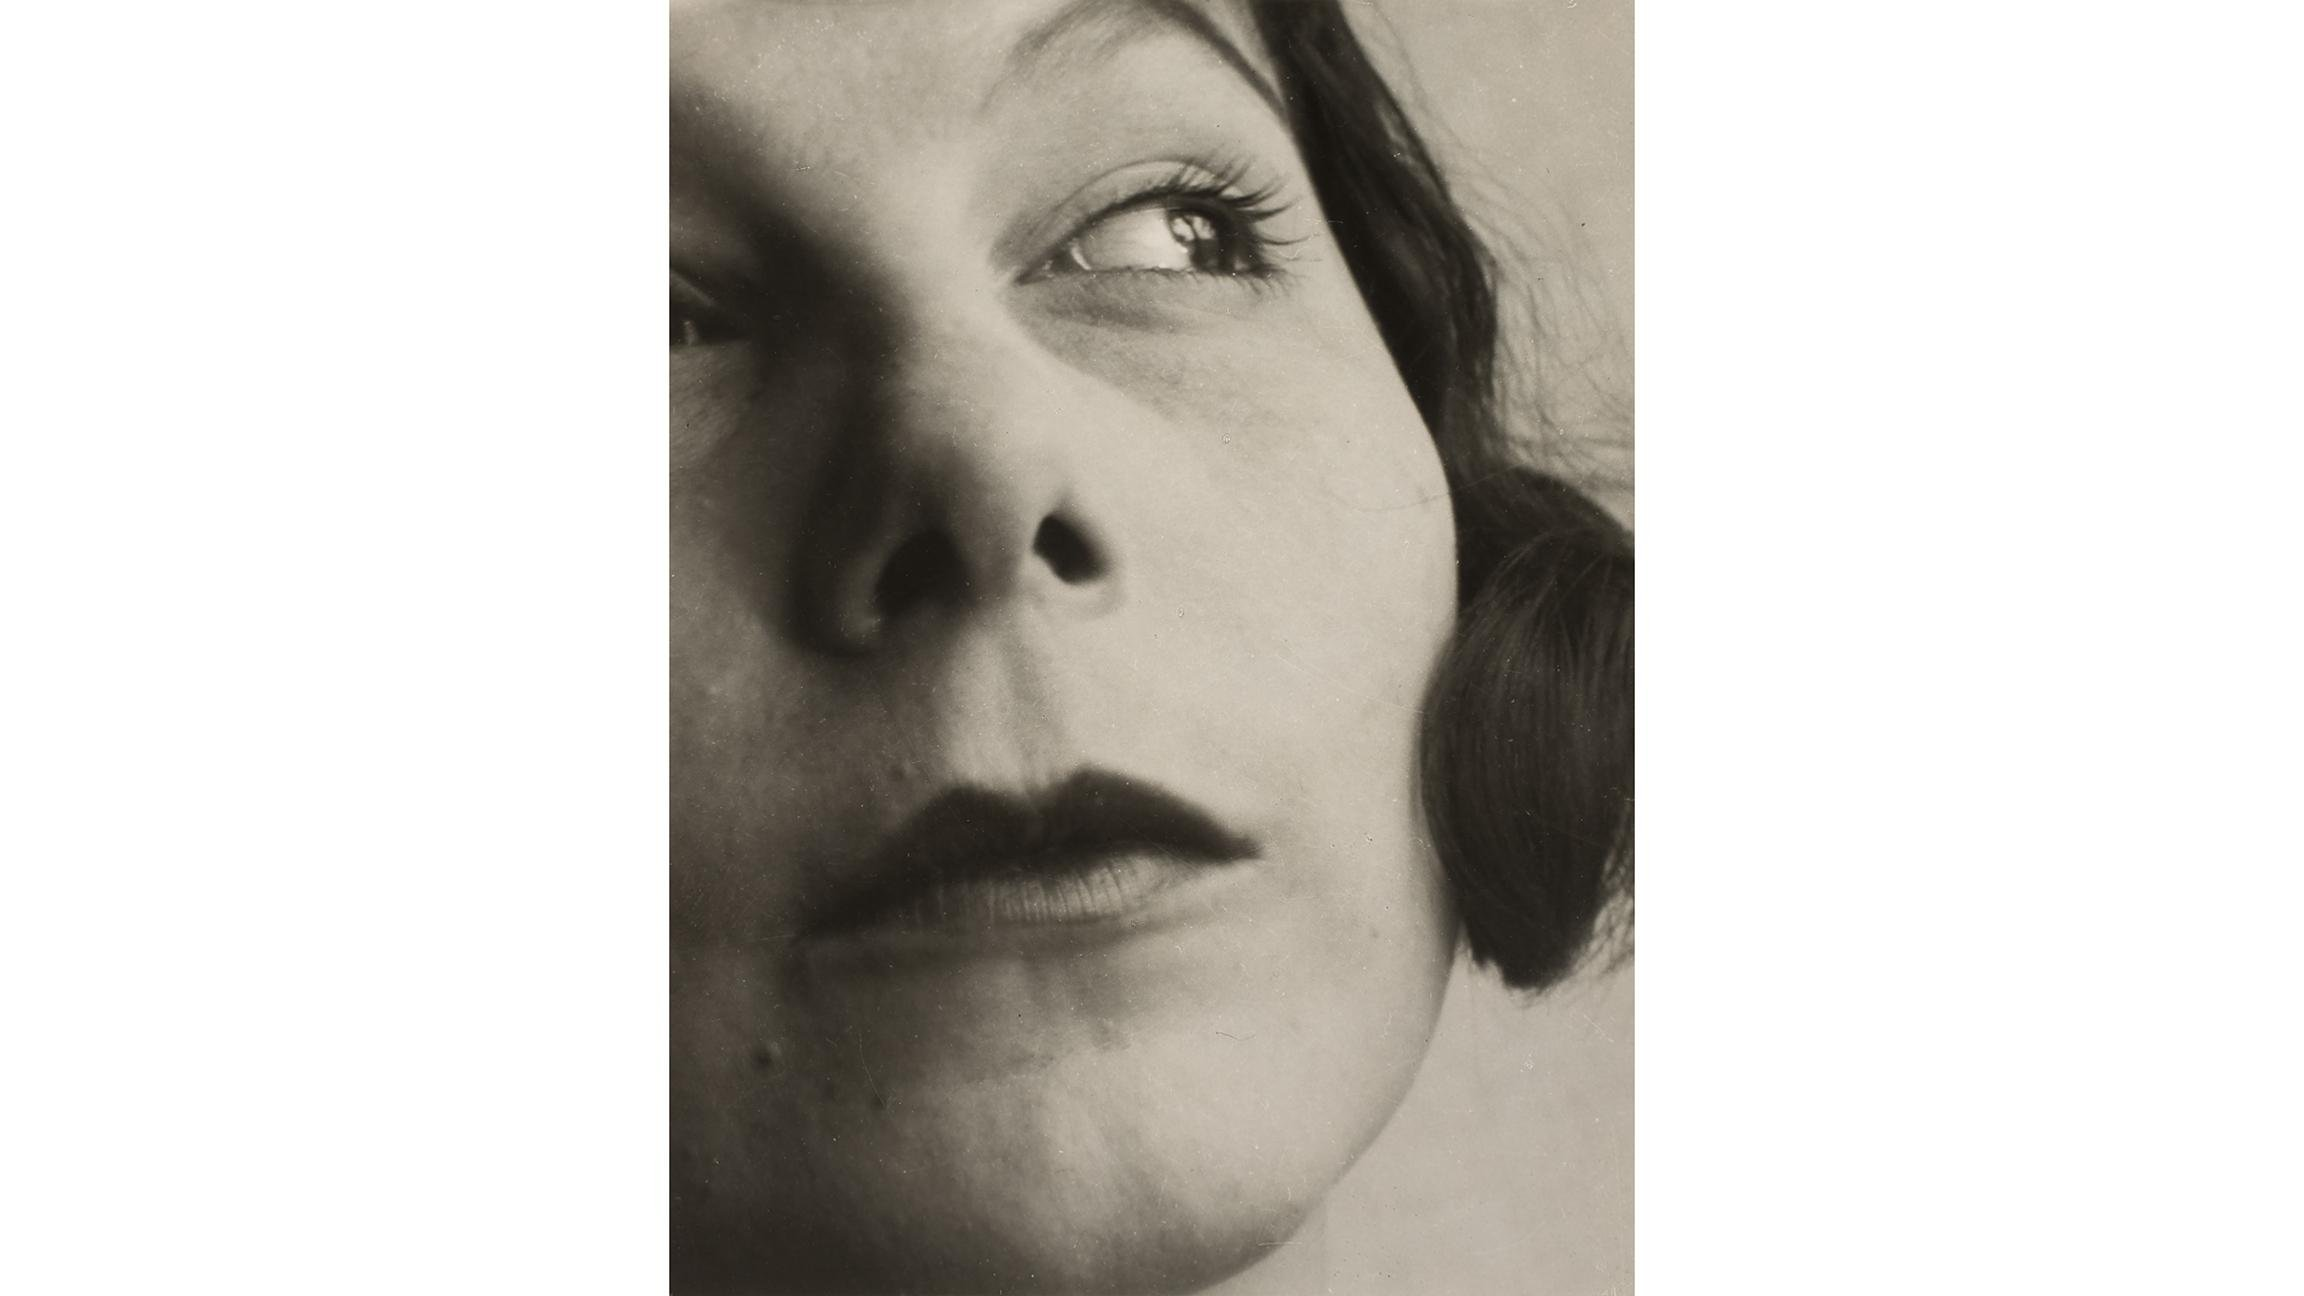 László Moholy-Nagy. Photograph (Ellen Frank), 1929. George Eastman Museum, Rochester, New York, Purchase with funds provided by Eastman Kodak Company, 1981.2163.0042. © 2016 Hattula Moholy-Nagy/VG Bild-Kunst, Bonn/Artists Rights Society (ARS), New York.